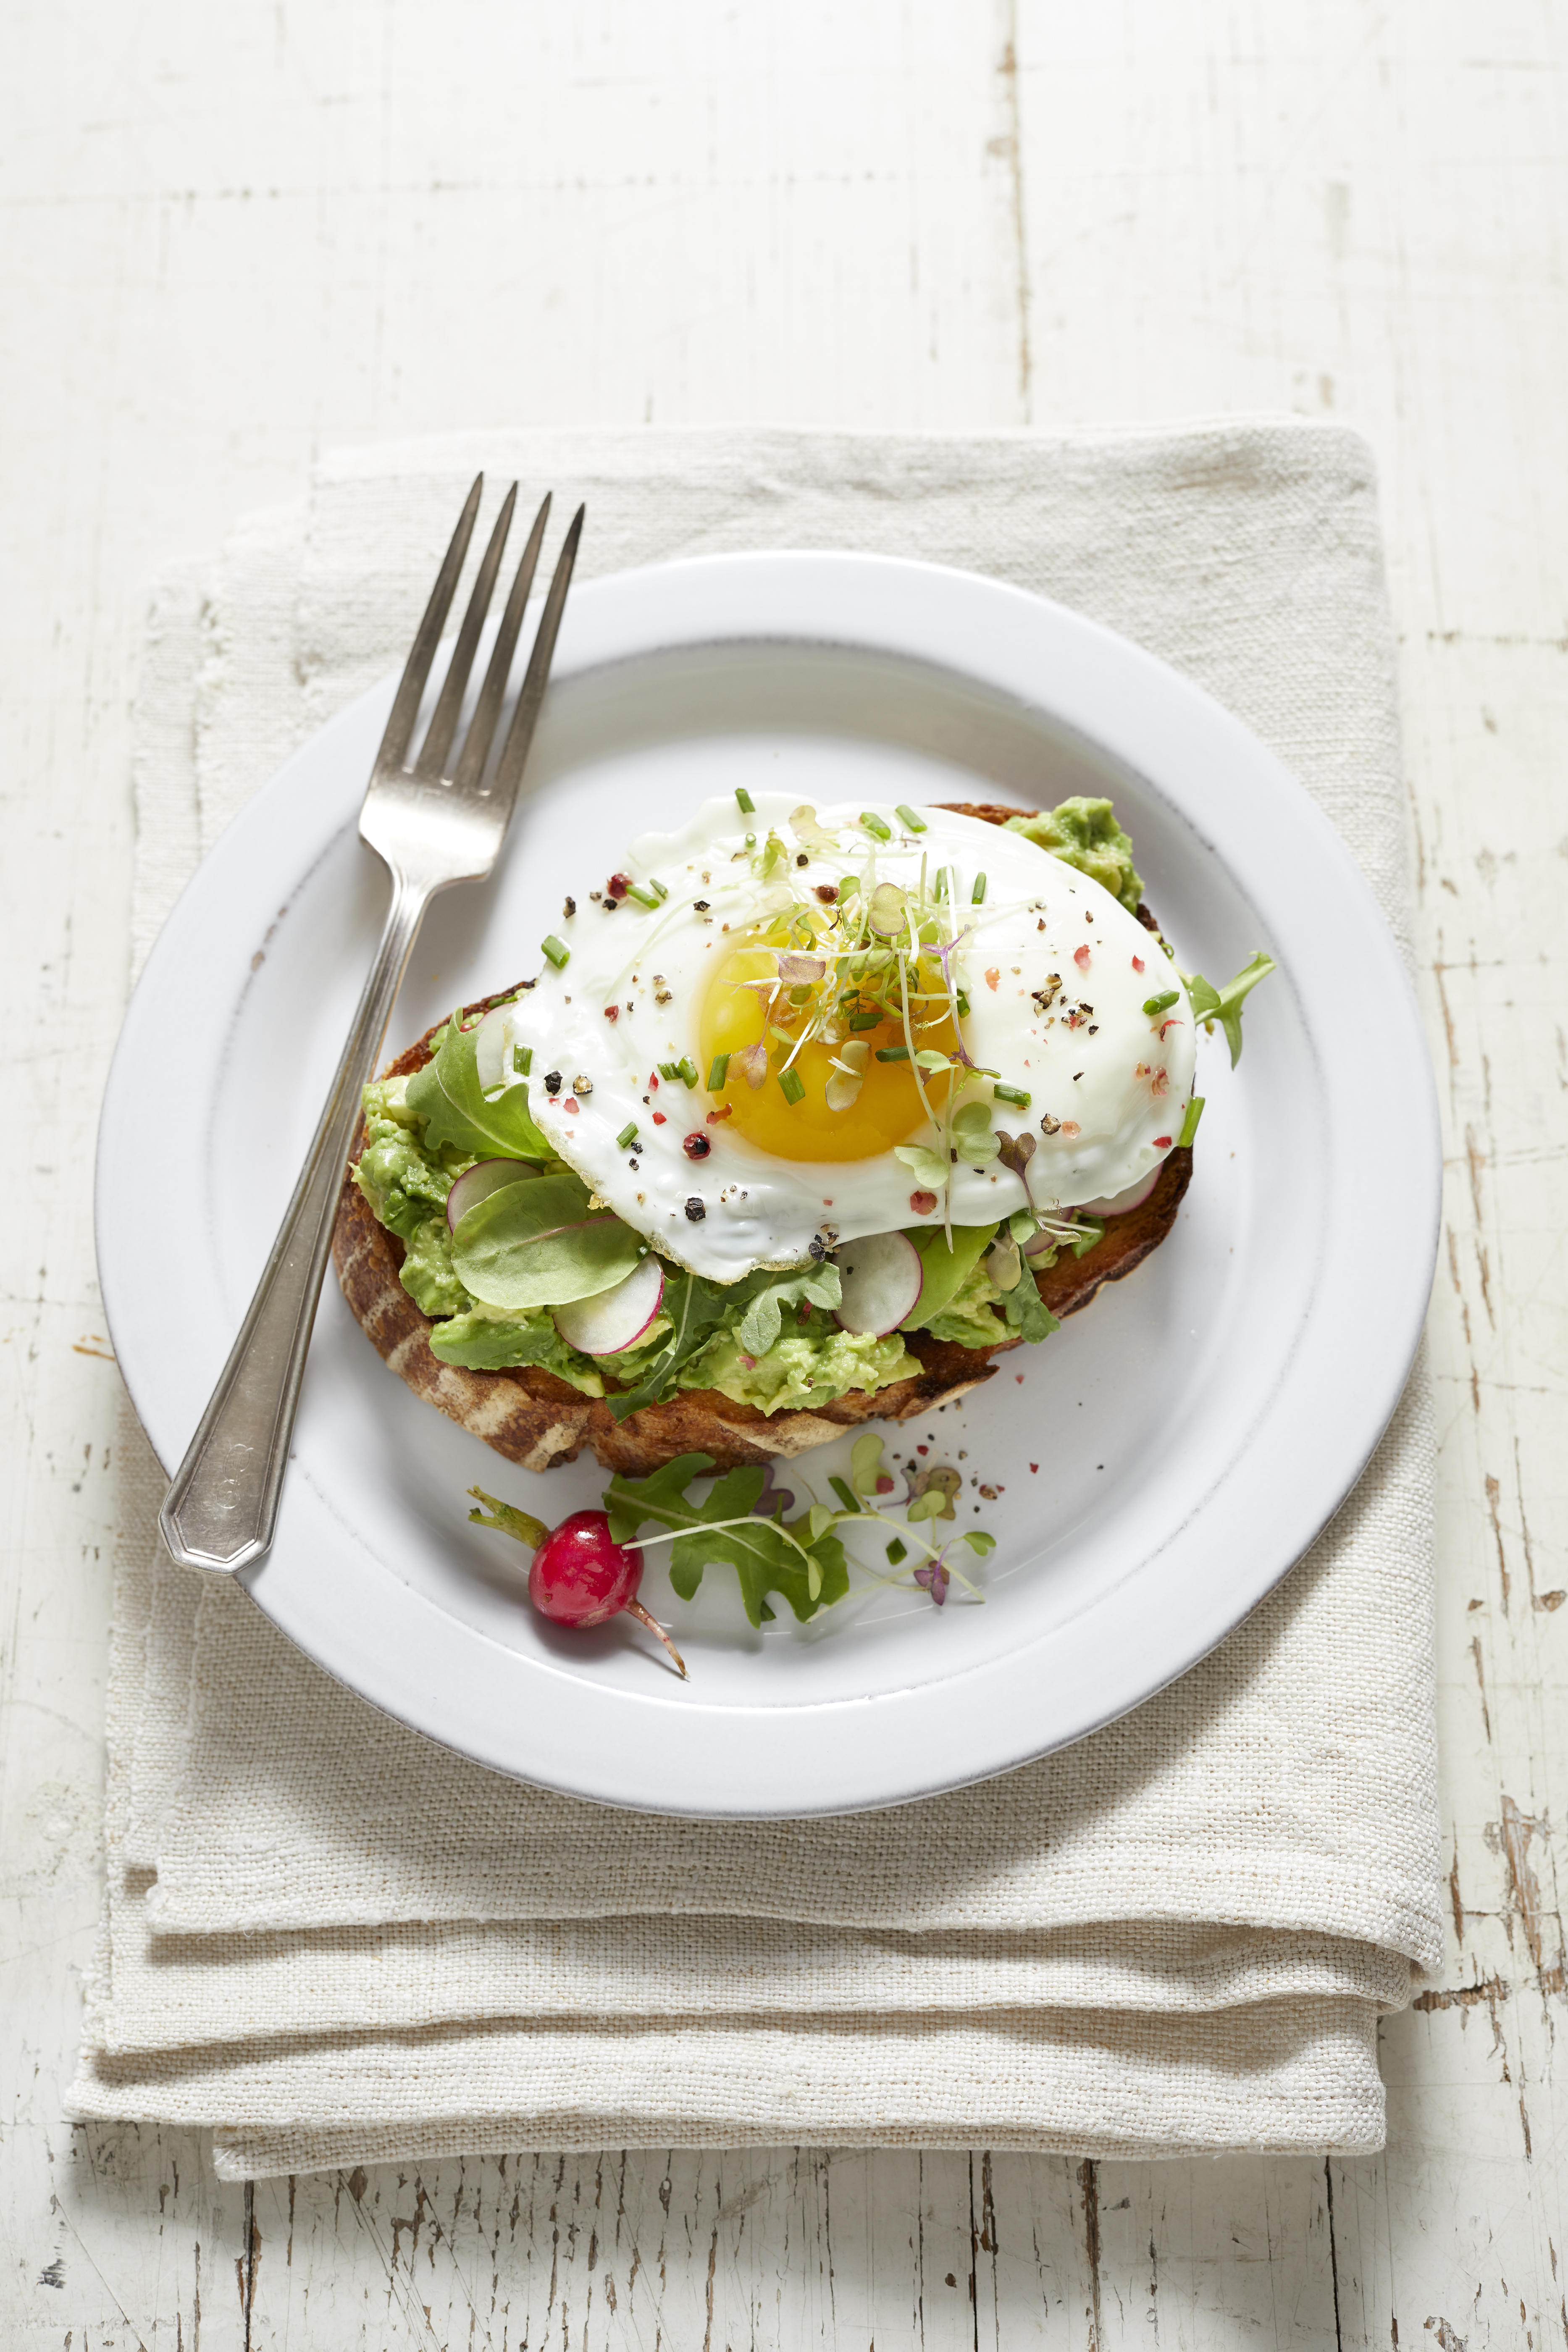 Avocado toast with radish, fried egg and micro greens